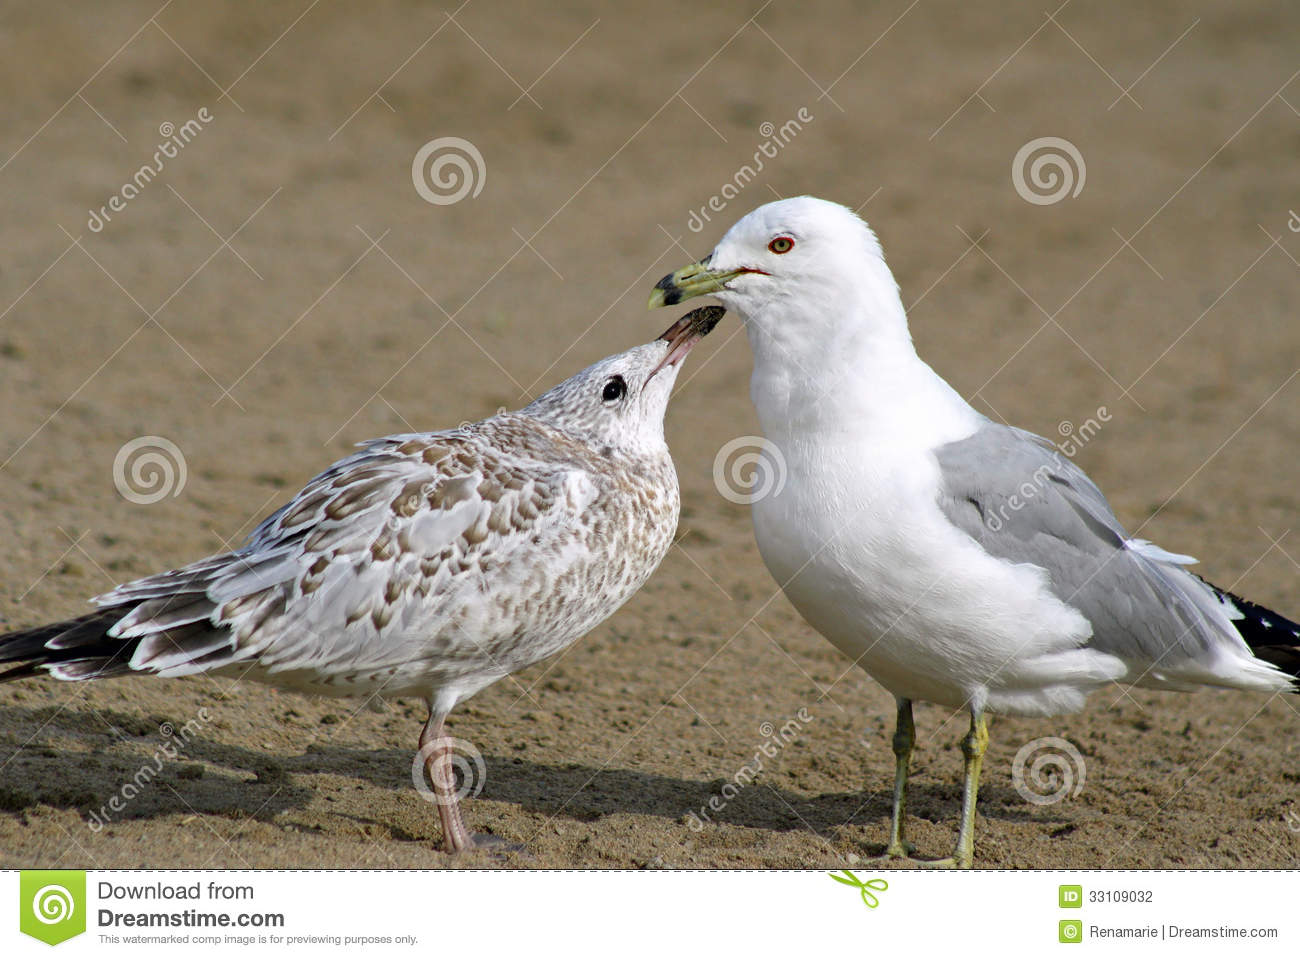 Apologise, Adult sea gull seems magnificent